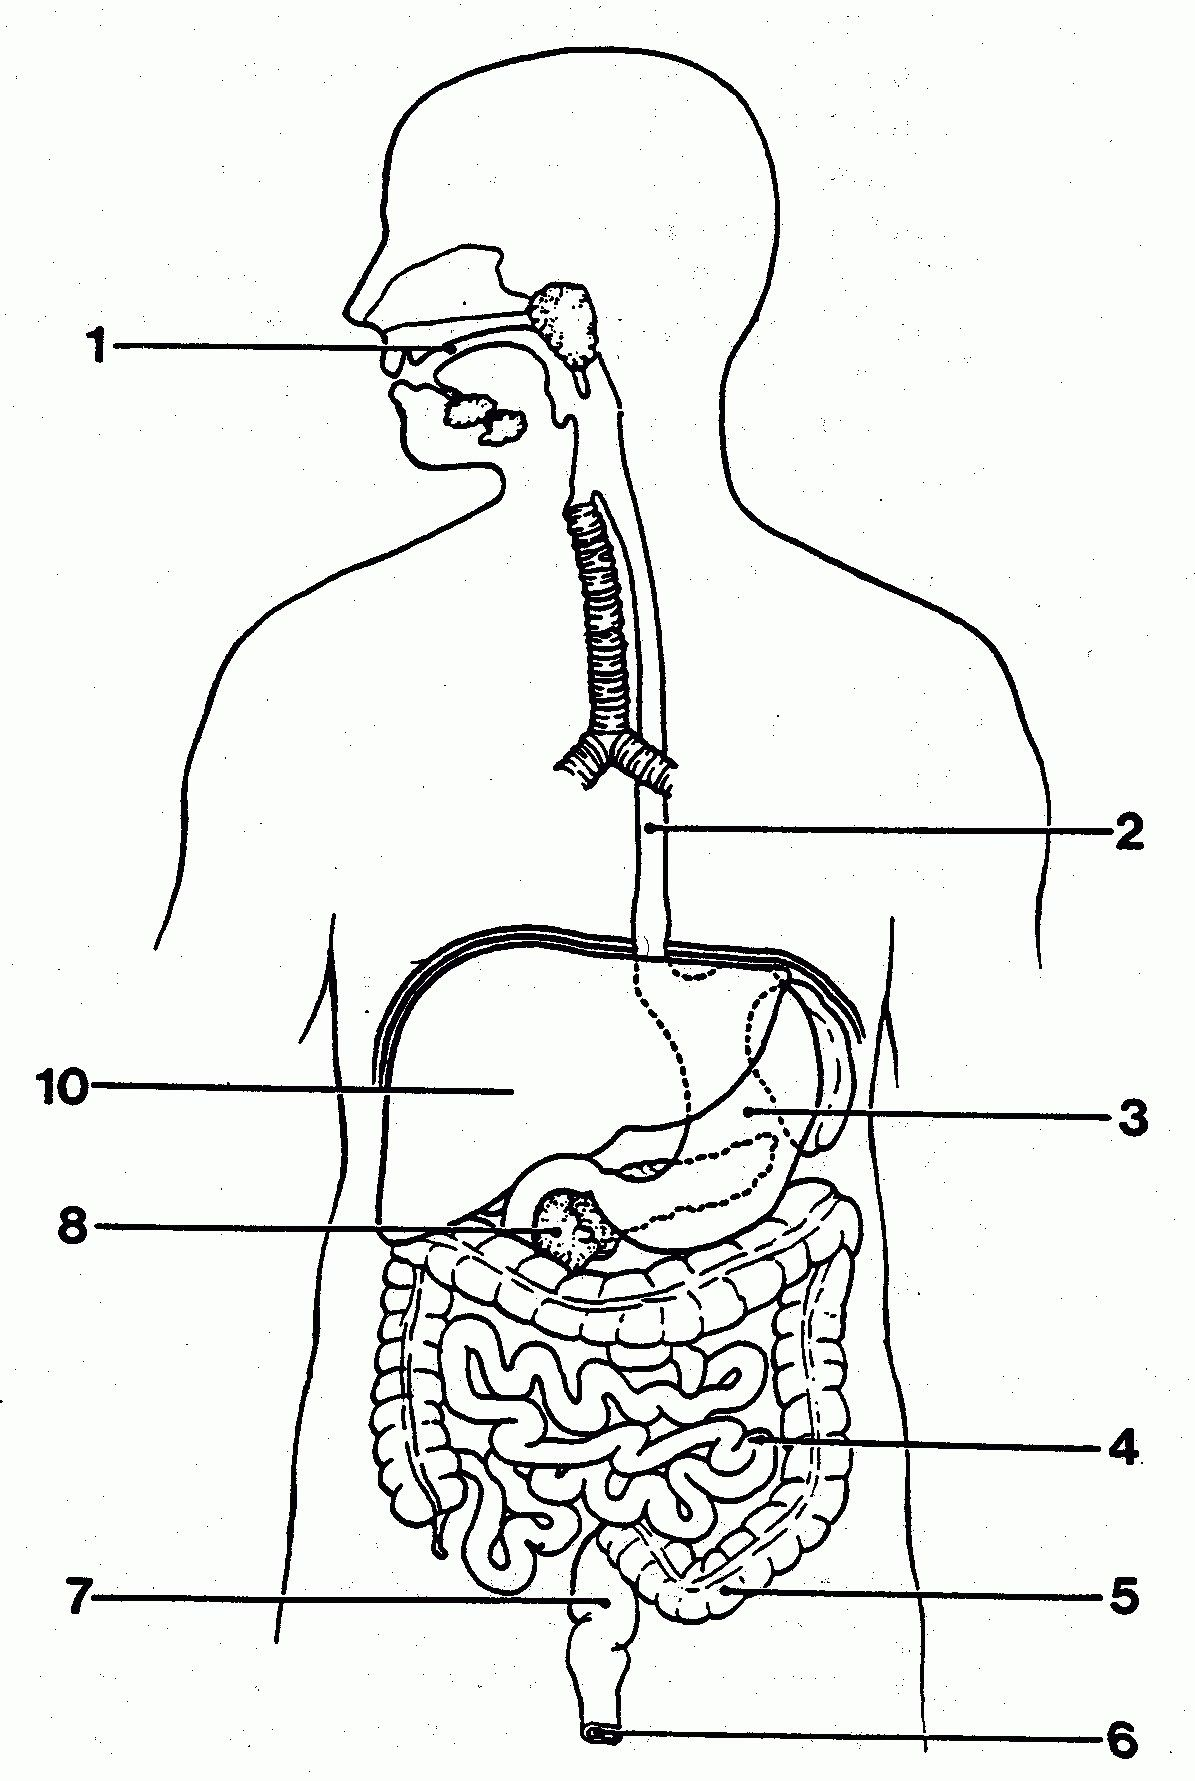 hight resolution of simple digestive system diagram simple digestive system diagram pictures simple digestive system diagram anatomy and